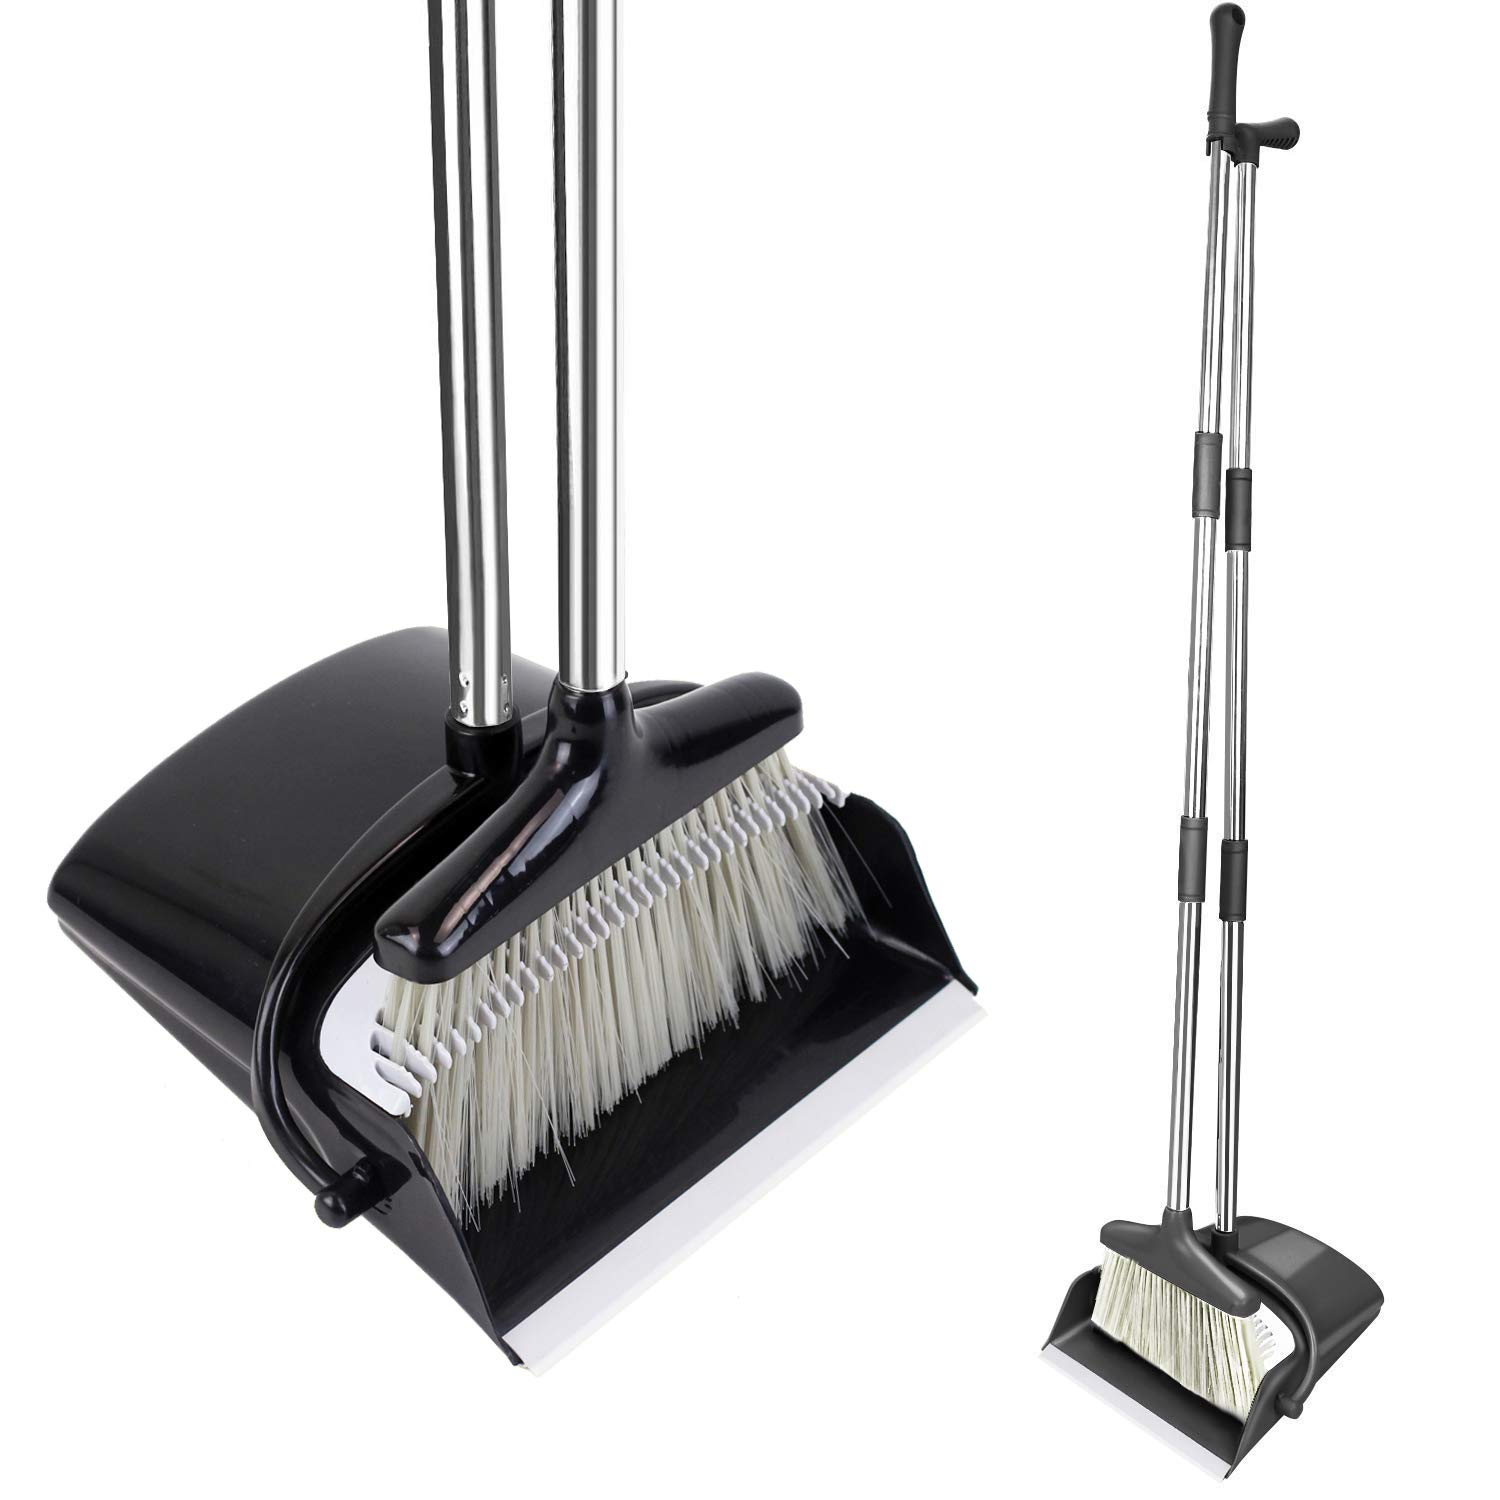 HomTrip Broom and Dustpan Set, Upright Dust Pan and Broom with 51'' Extendable Long Handle for Home Kitchen Room Lobby Office Floor Clean by HomTrip